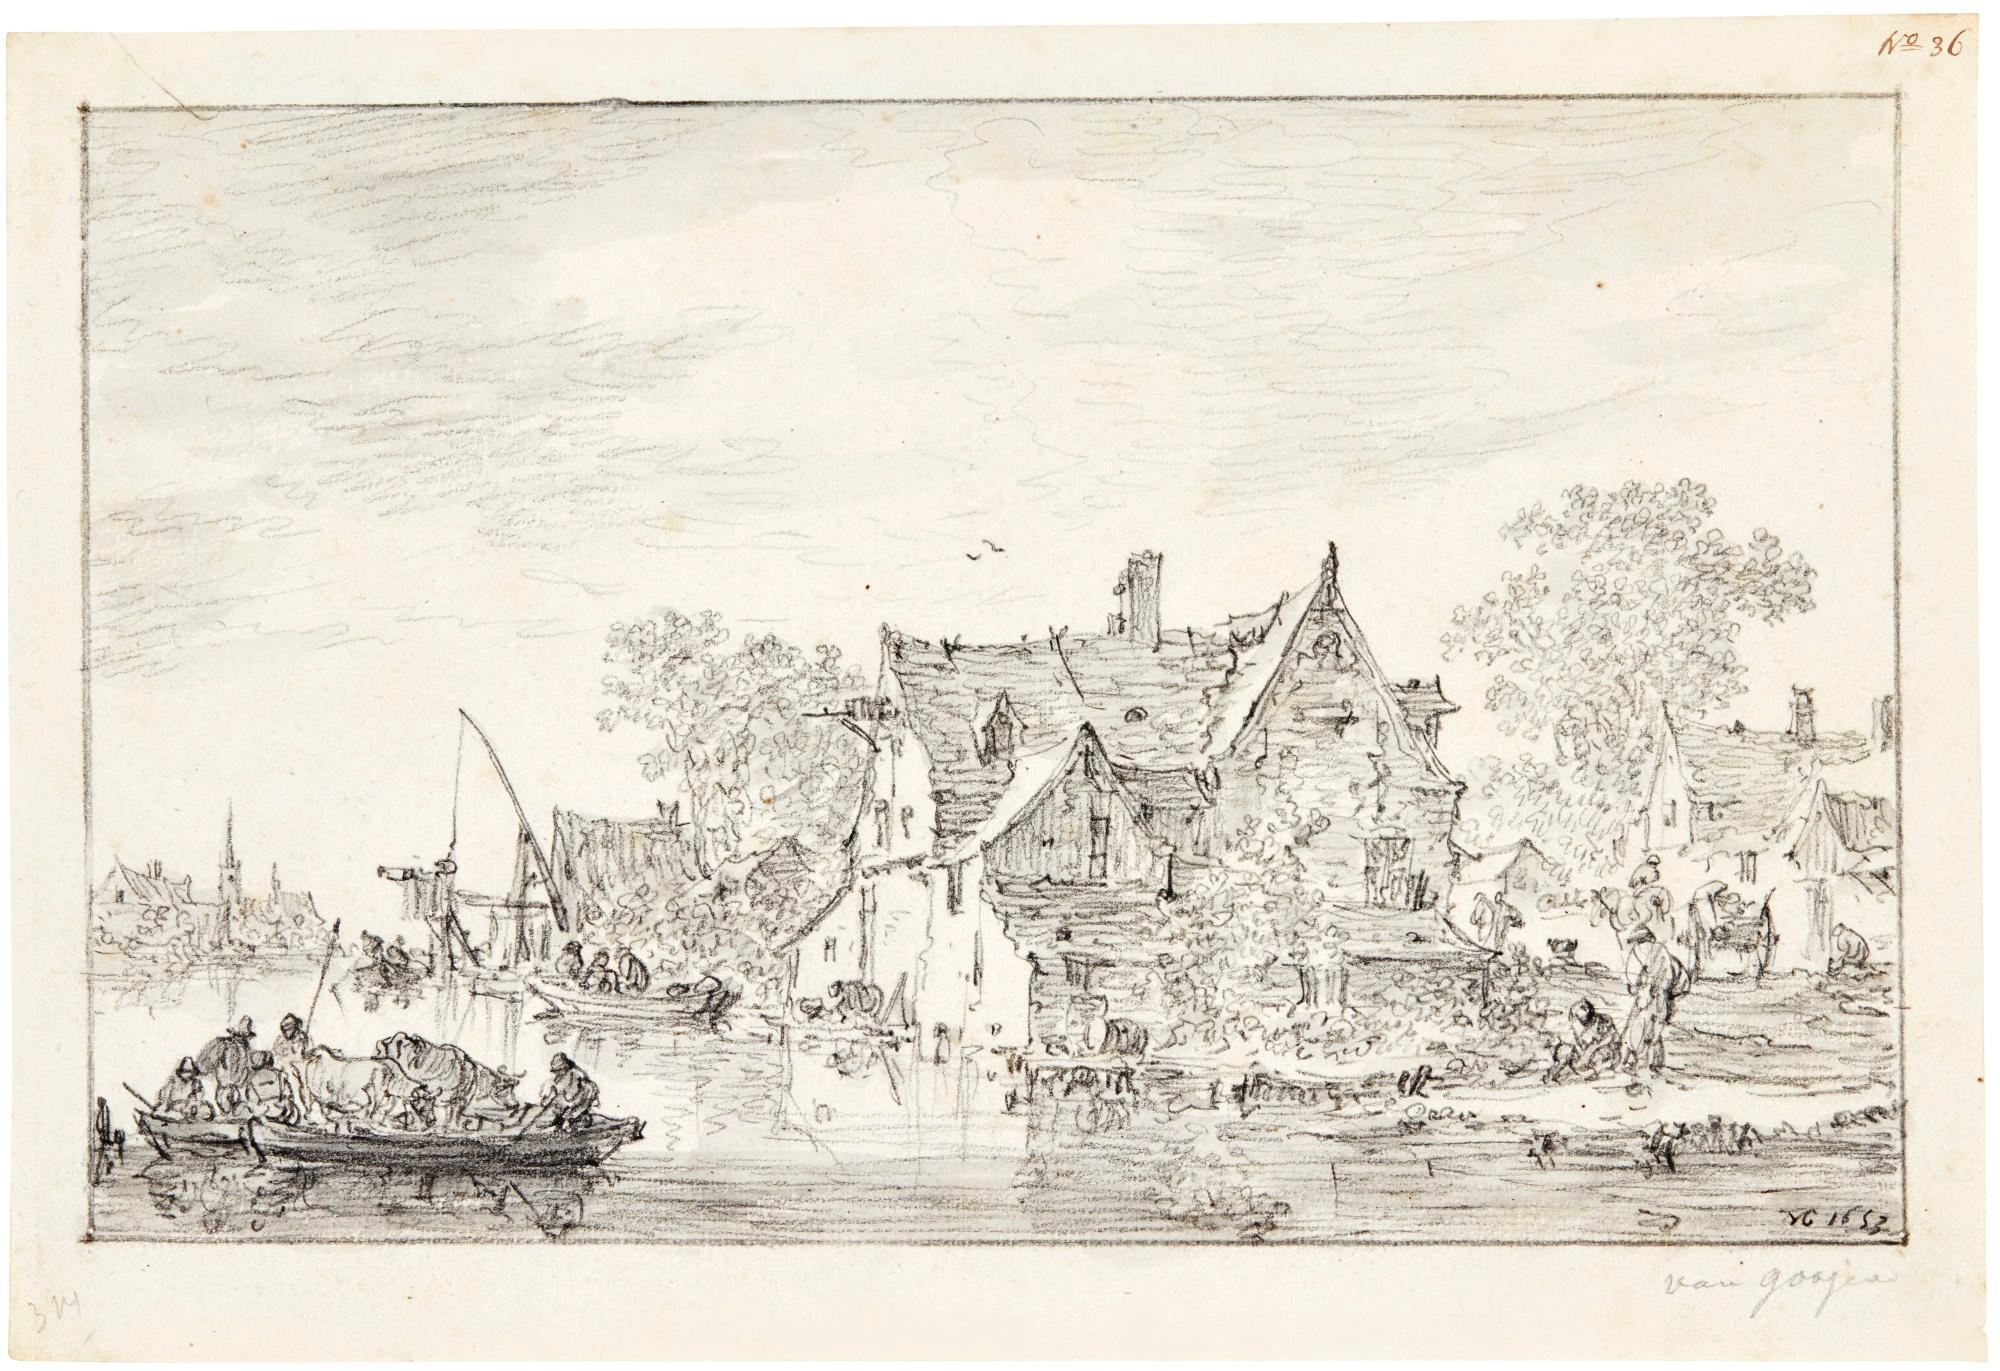 River Landscape with Figures and Cows in a Ferryboat, Approaching a Village by Jan van Goyen